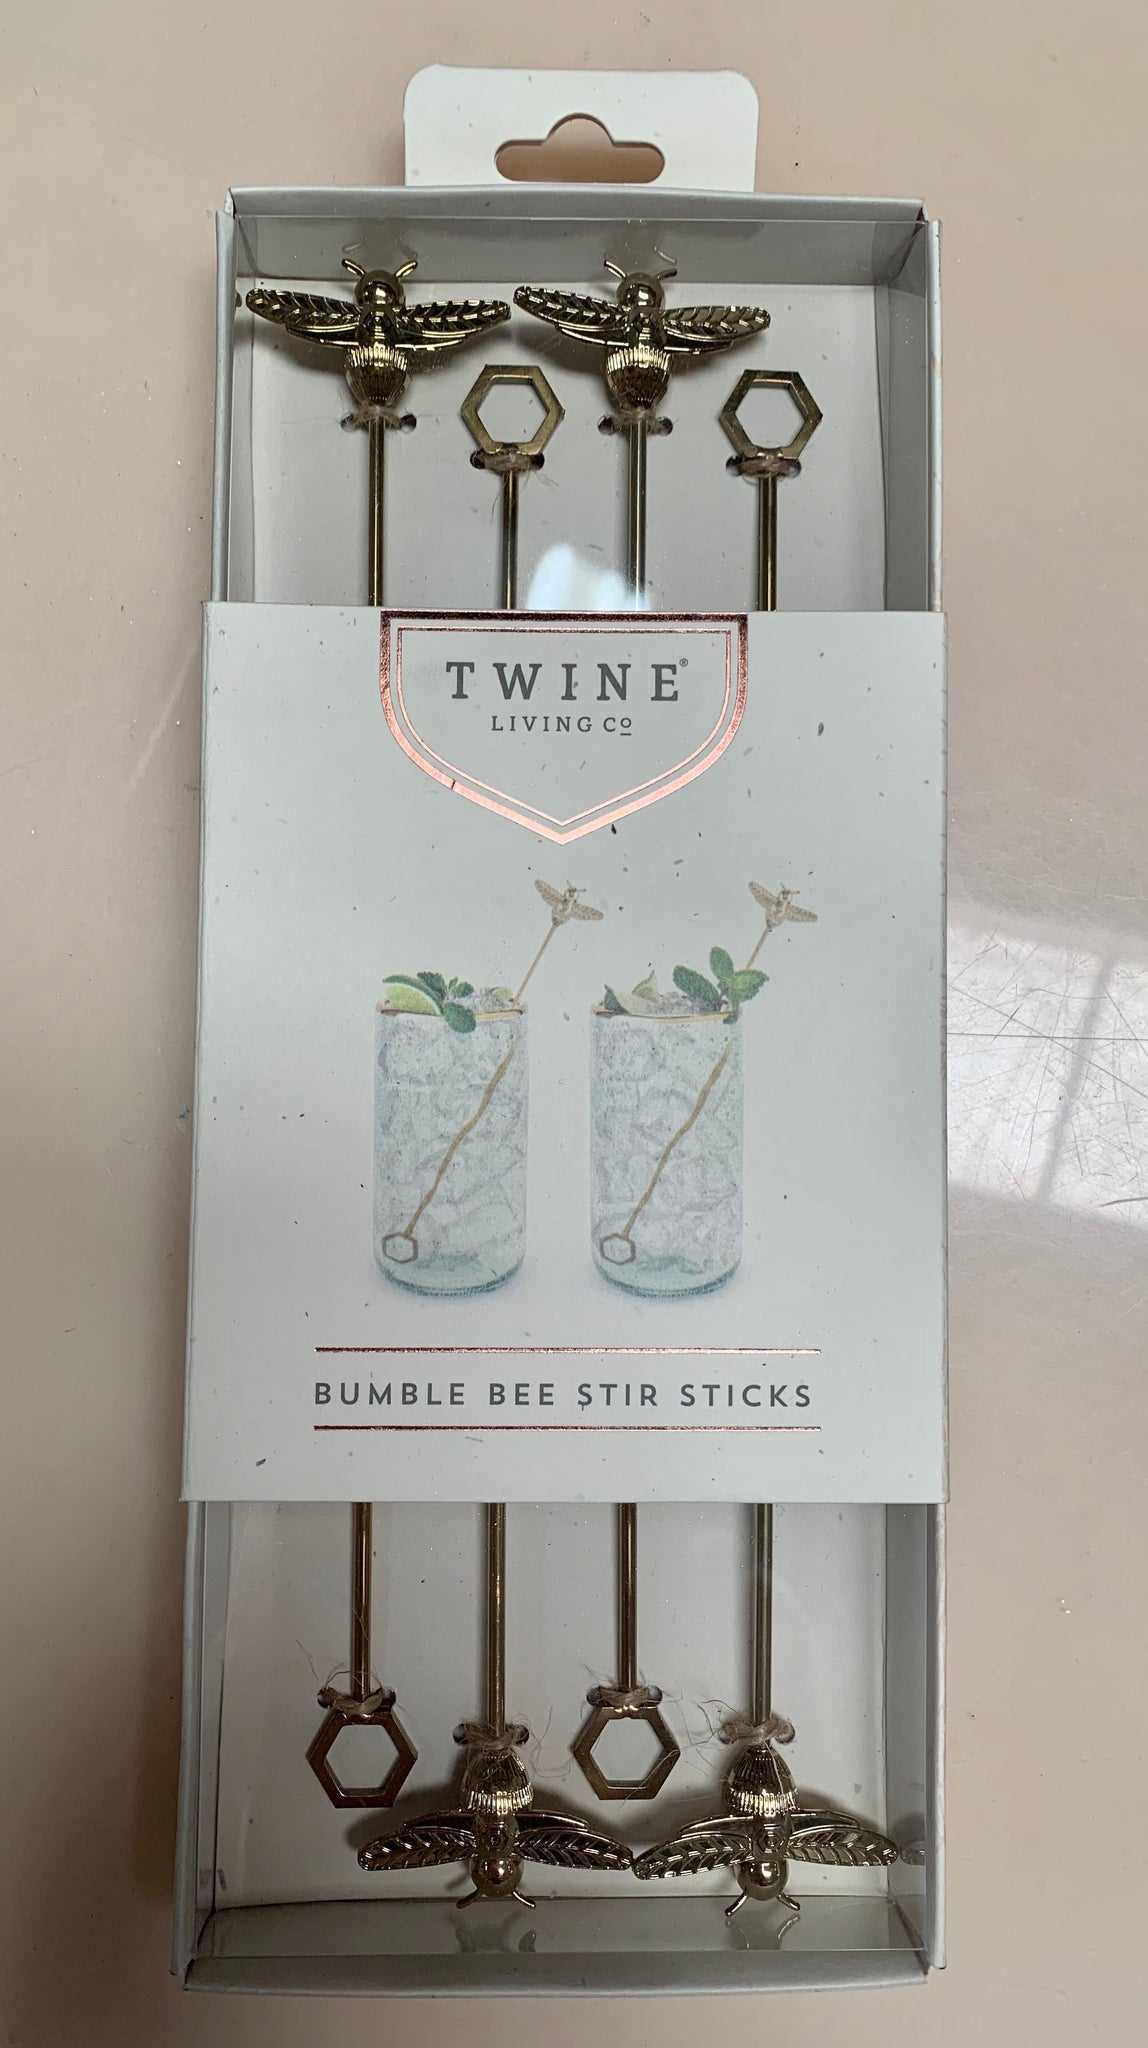 Bumble Bee Stir Sticks